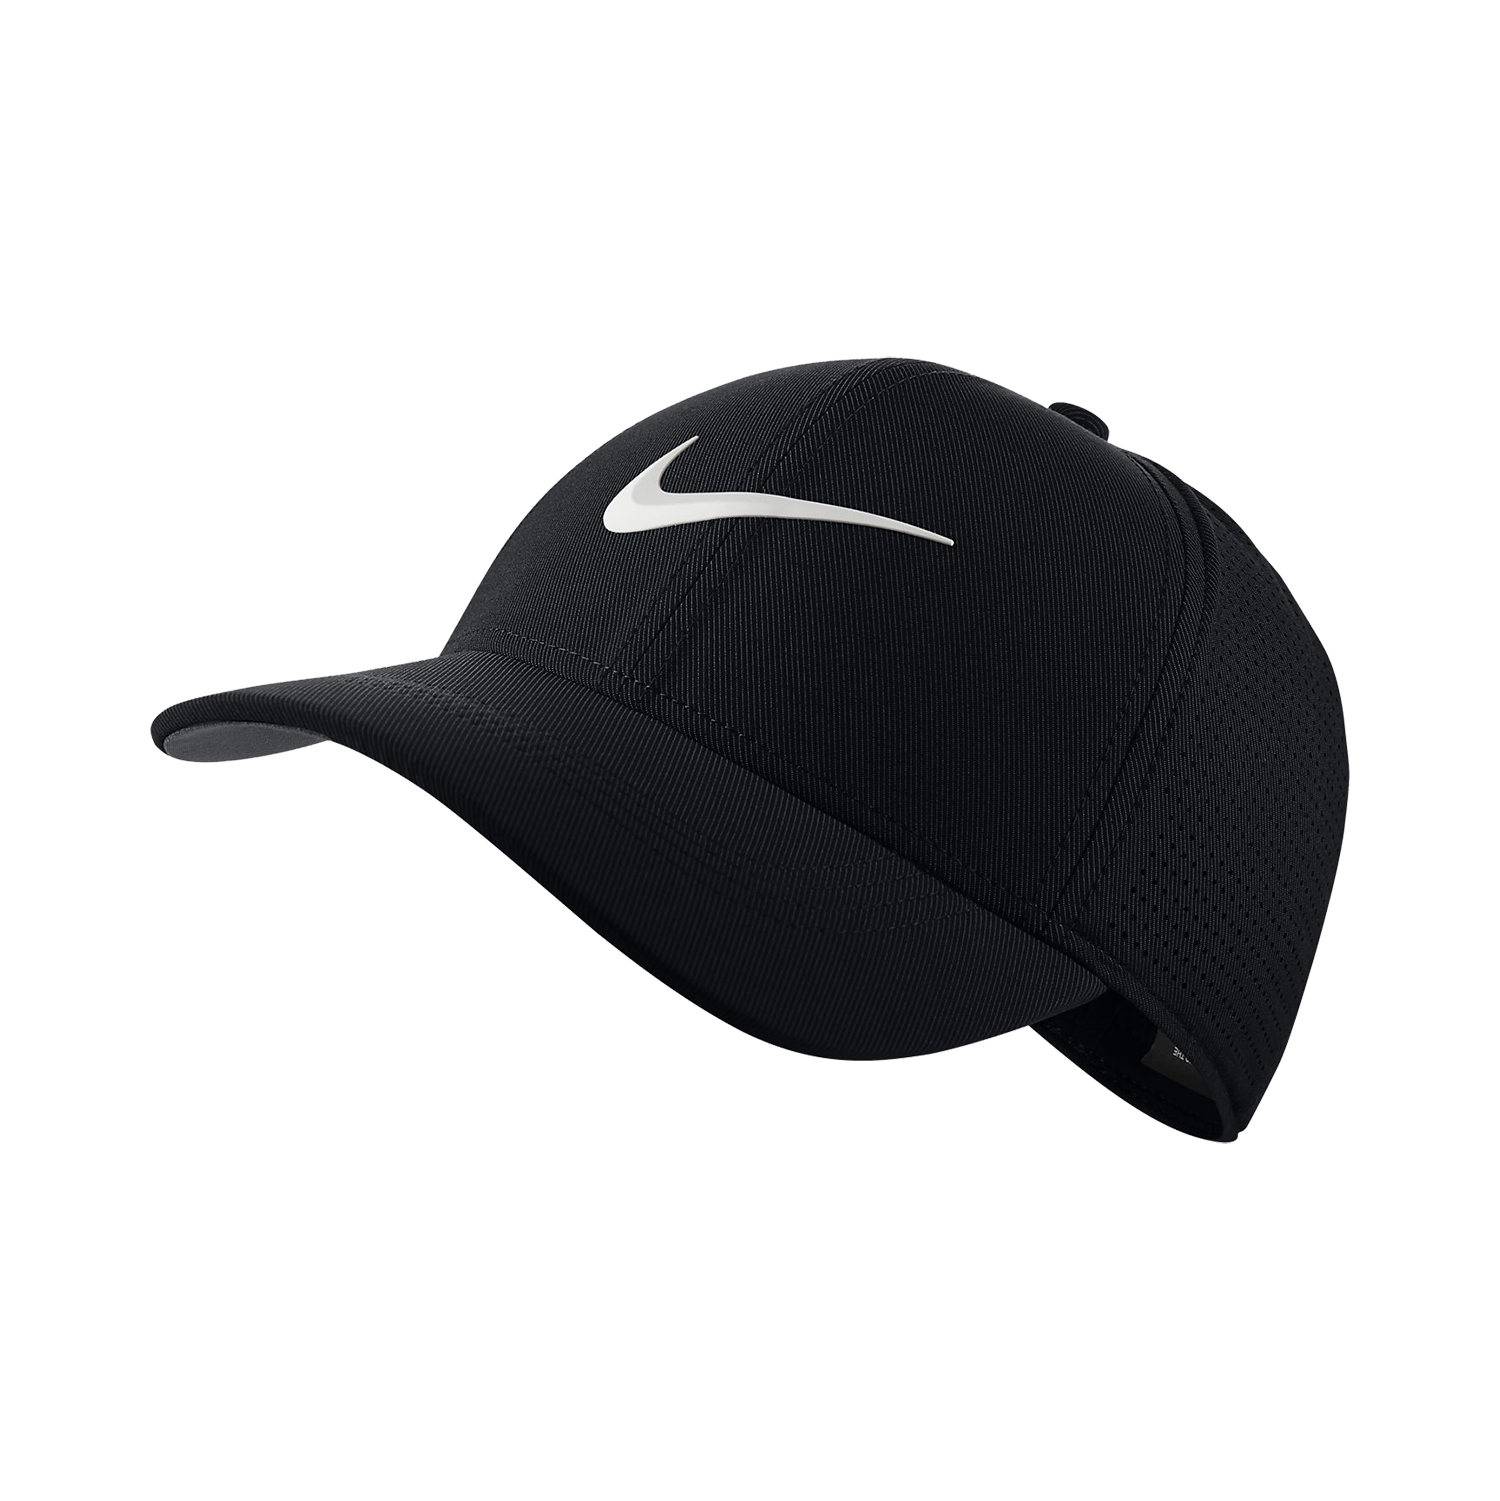 8d66ff58f211 ... italy new 2018 nike aerobill l91 perforated statement black fitted l xl hat  cap 362d0 a22aa